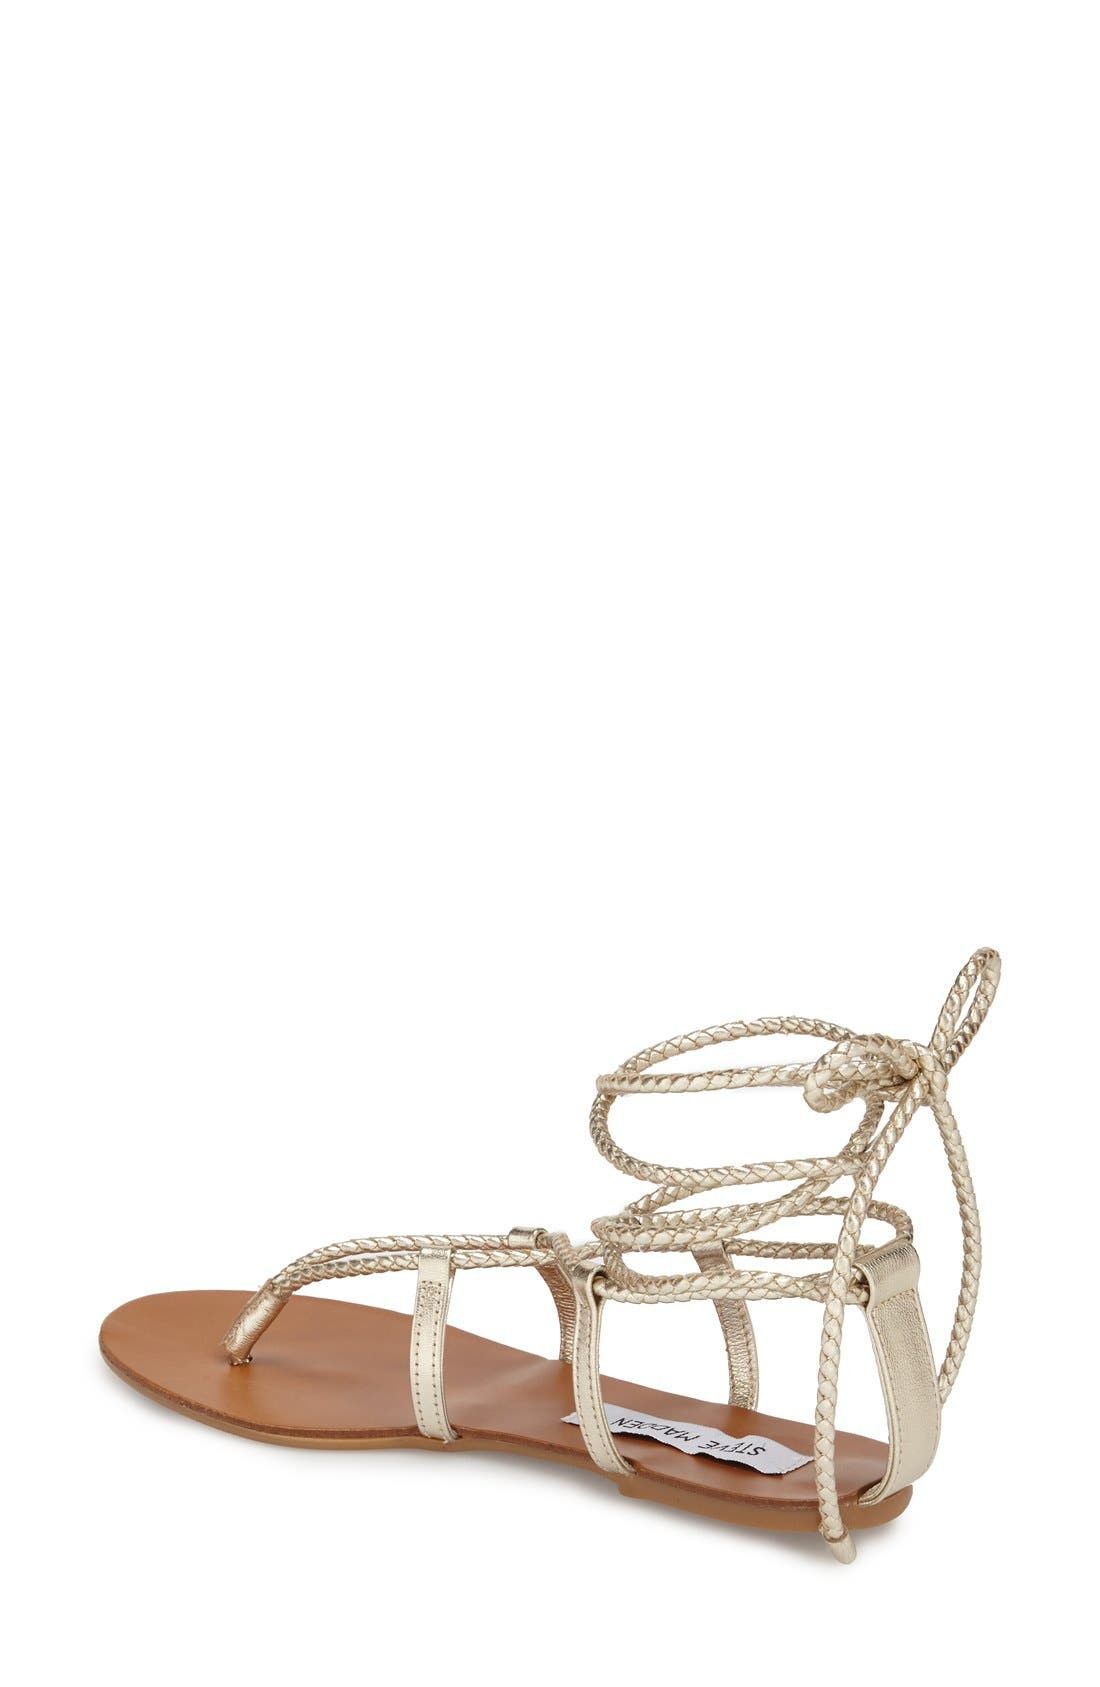 'Werkit' Gladiator Sandal,                             Alternate thumbnail 2, color,                             Gold Multi